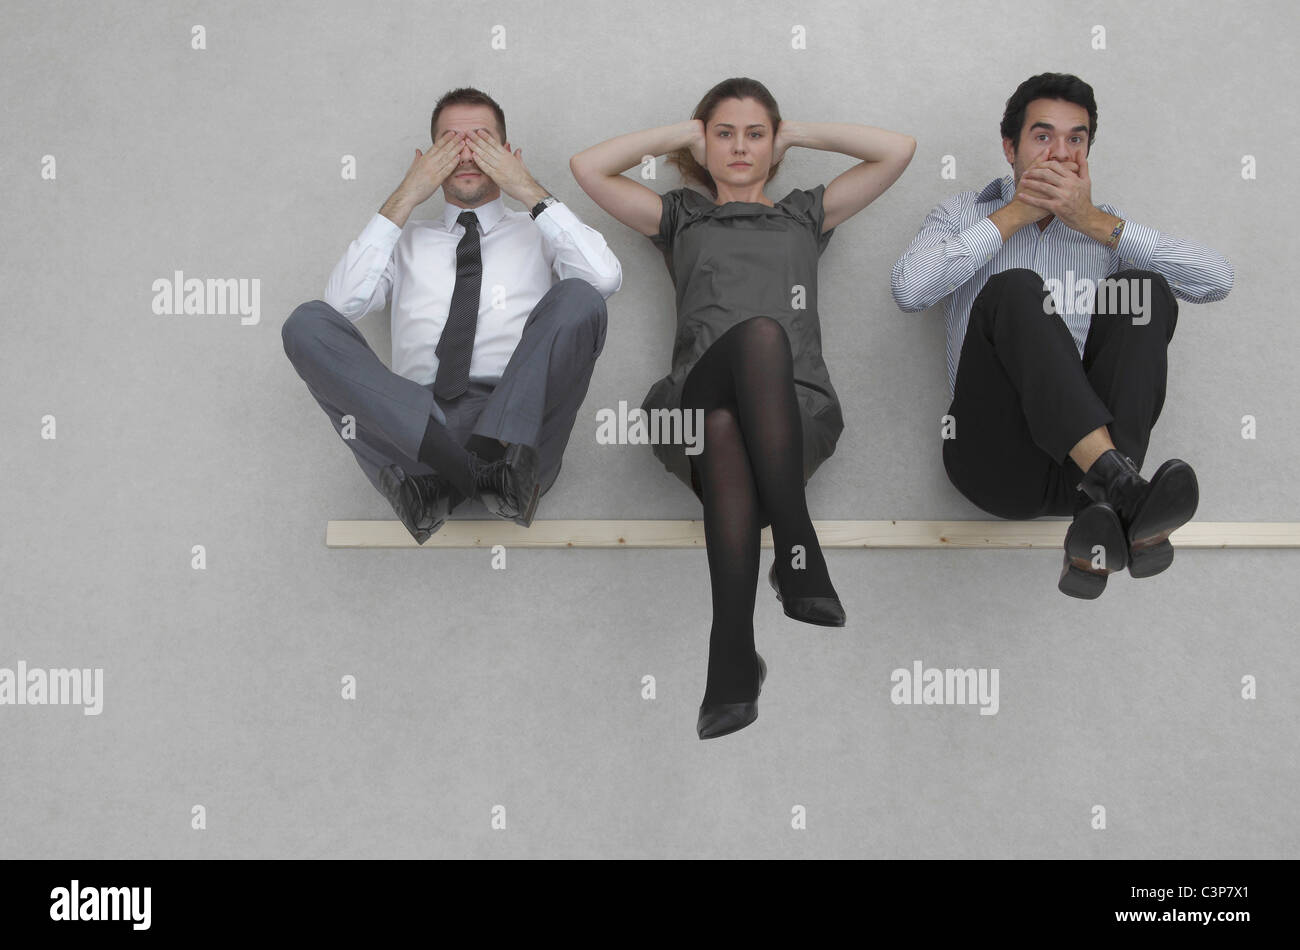 Three business people, See no evil, hear no evil, and speak no evil, elevated view - Stock Image